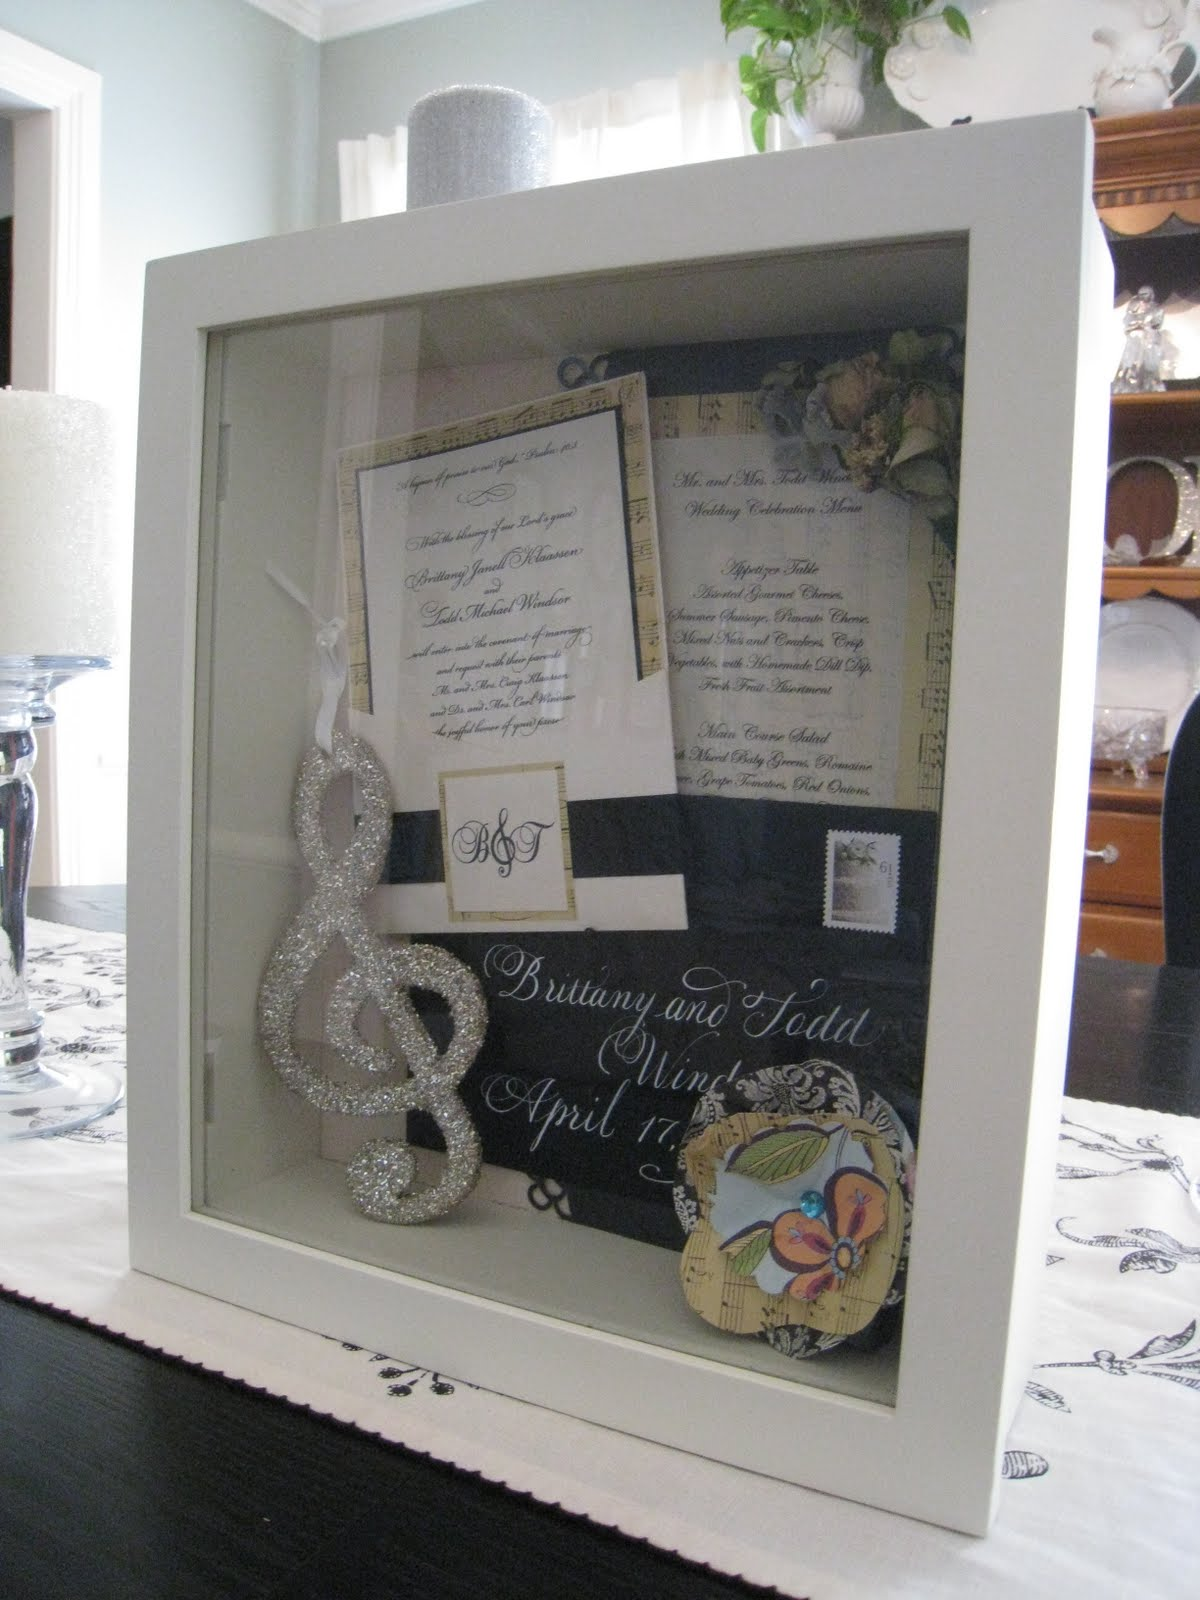 wedding shadow box wedding shadow box As soon as I get our wedding photos I may add one to the shadow box It was easy and fun to put together